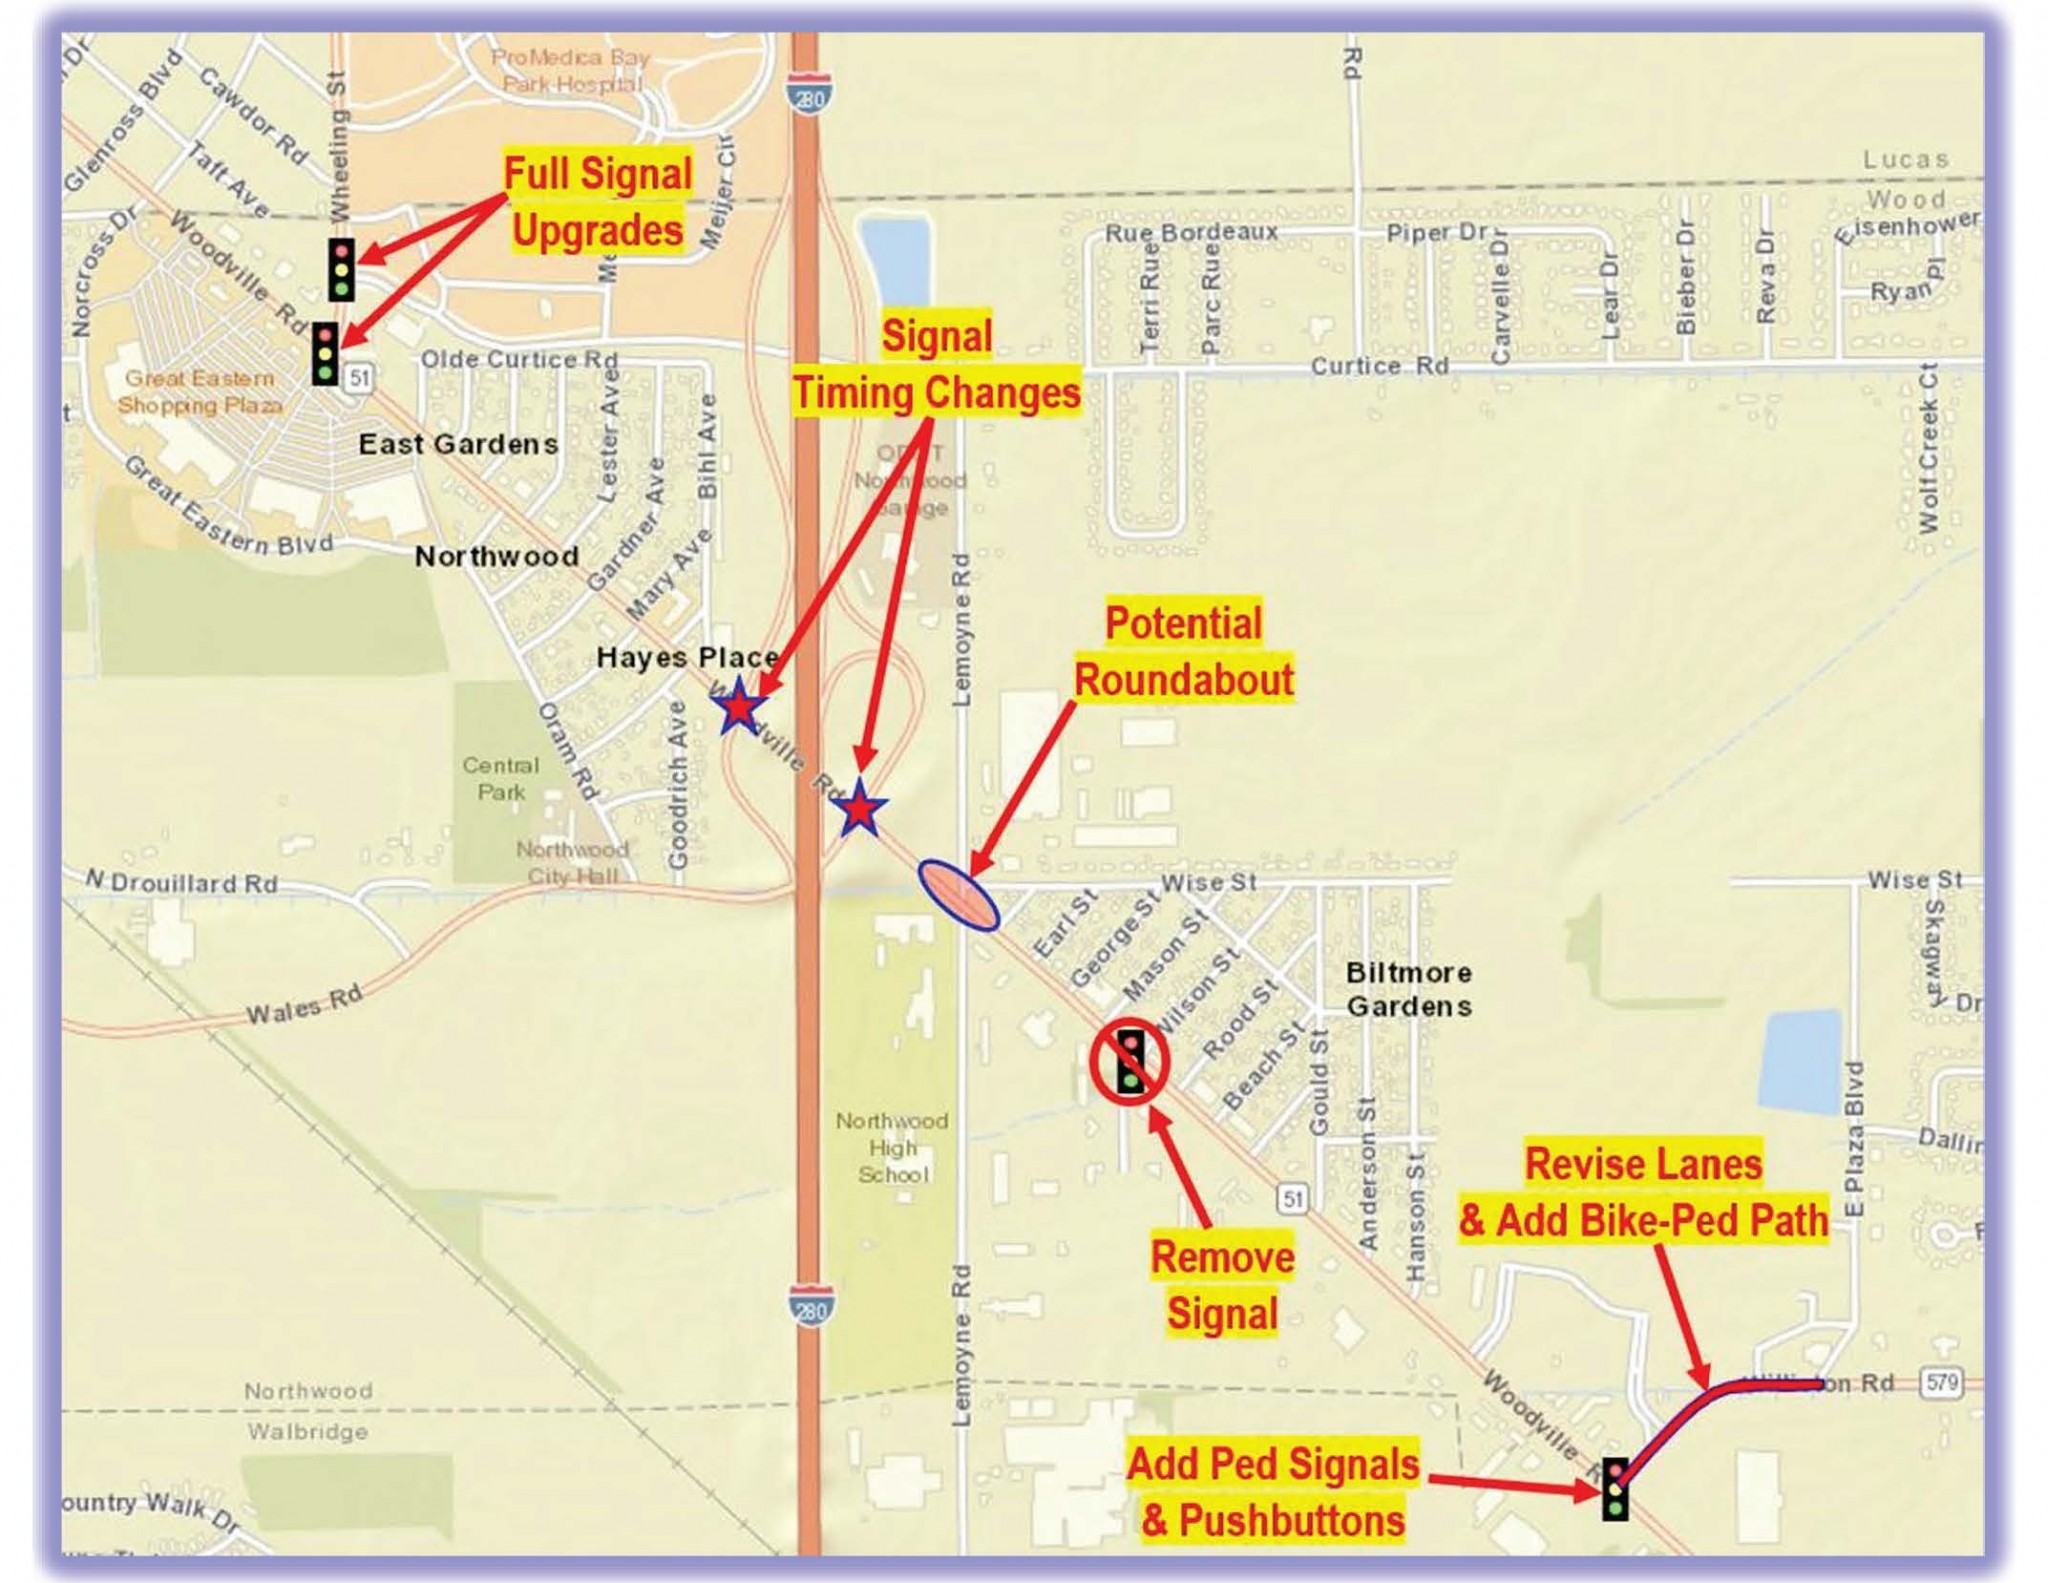 The upcoming meeting will focus on possible infrastructure improvement along Woodville Road.